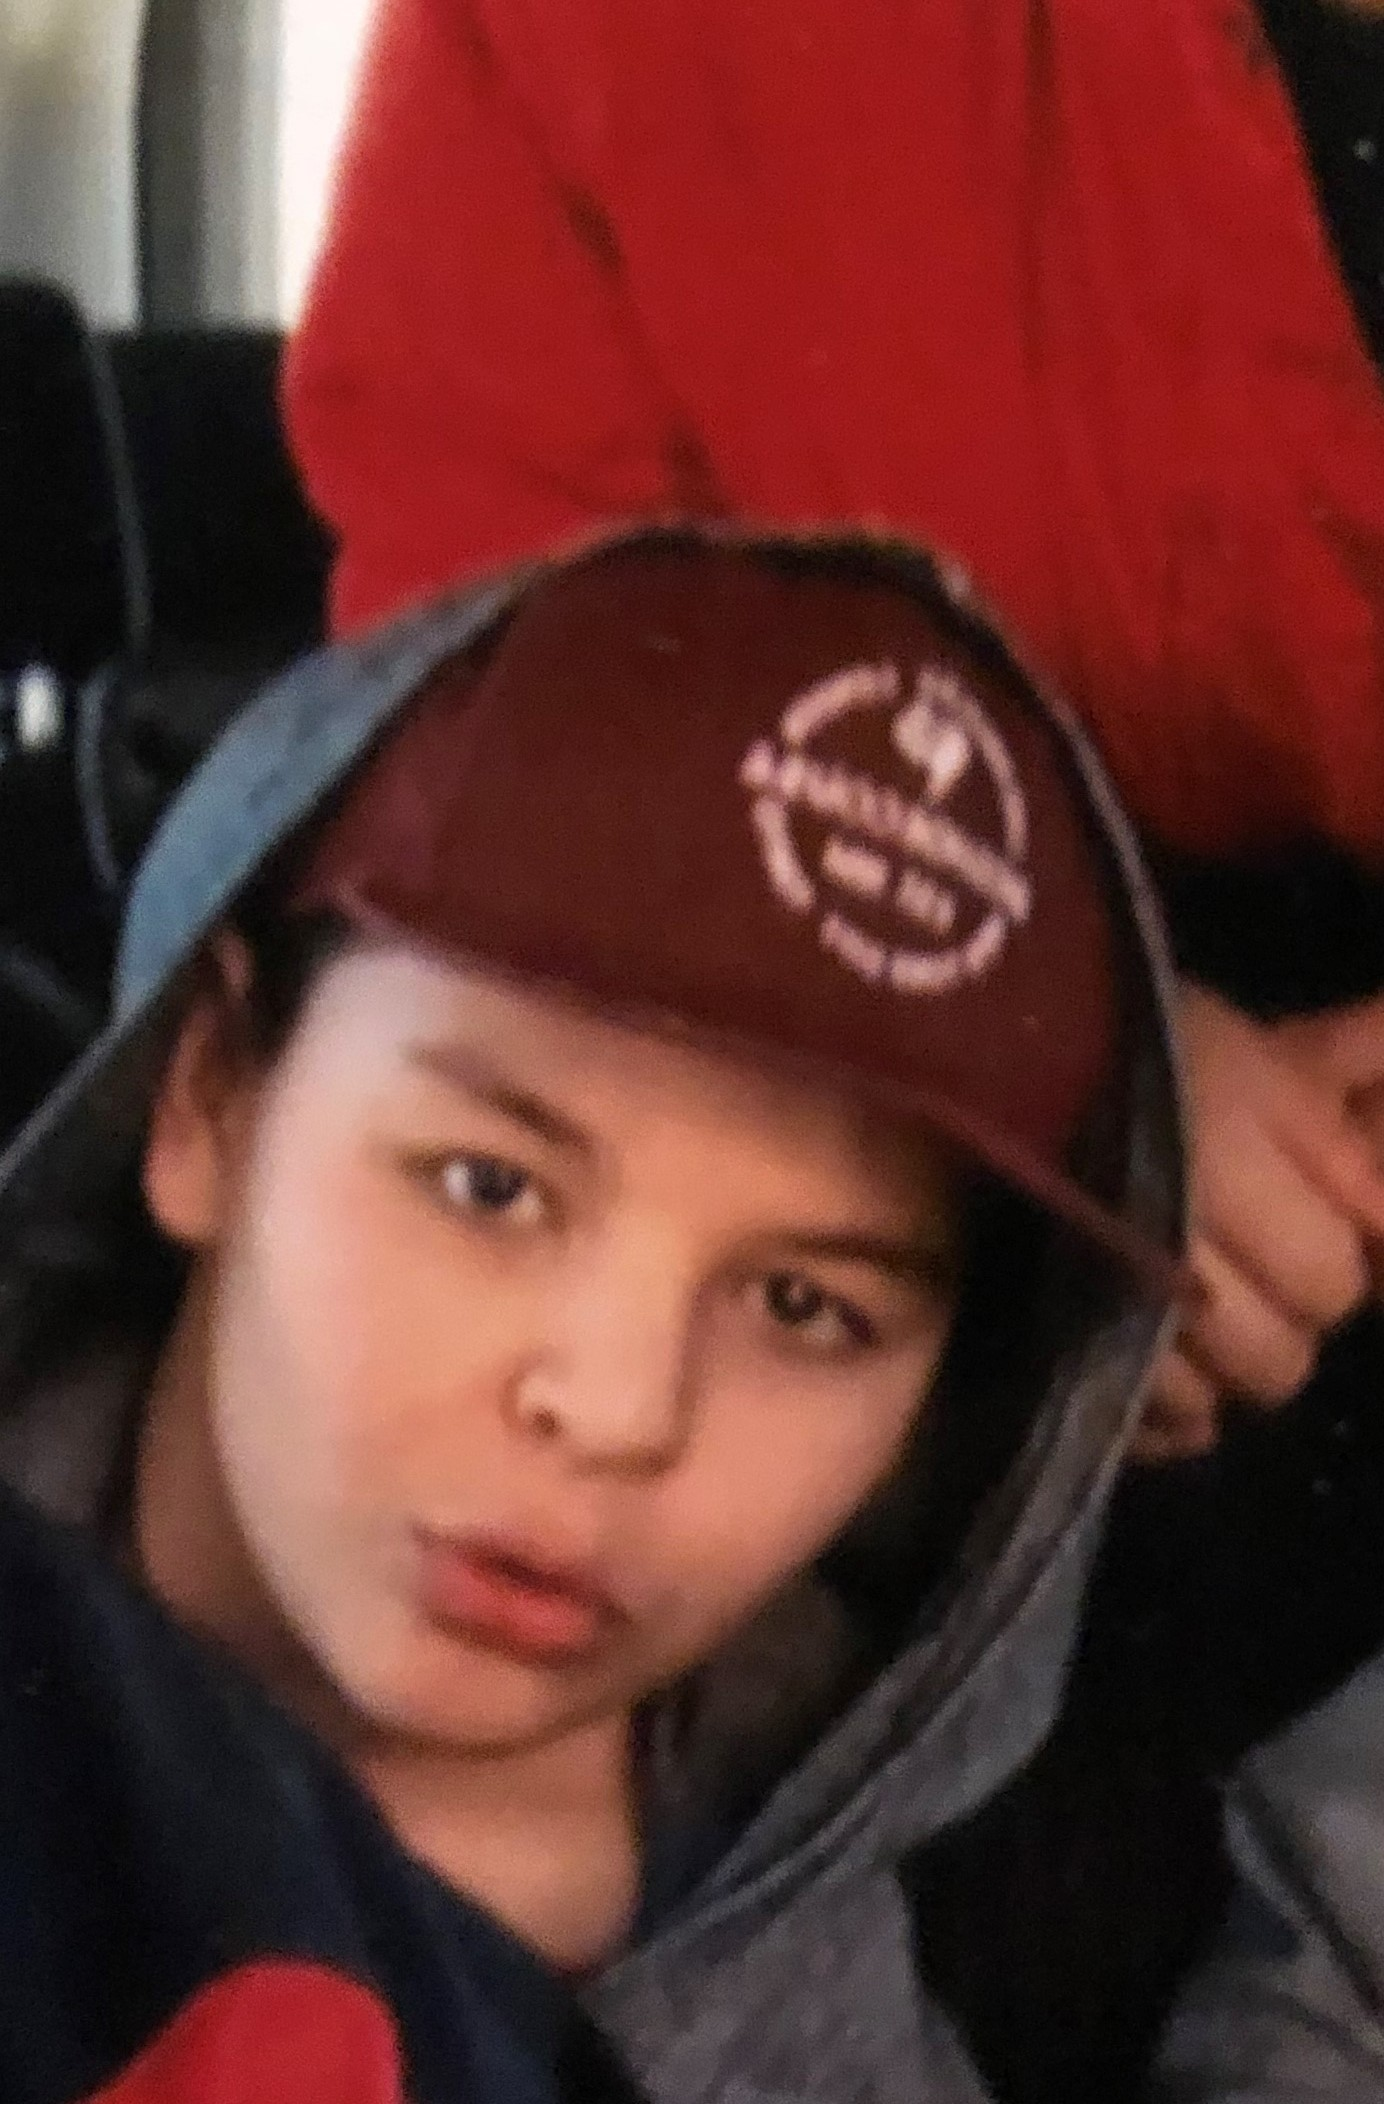 RCMP looking for missing boy last seen near Christopher Lake - MBC Radio